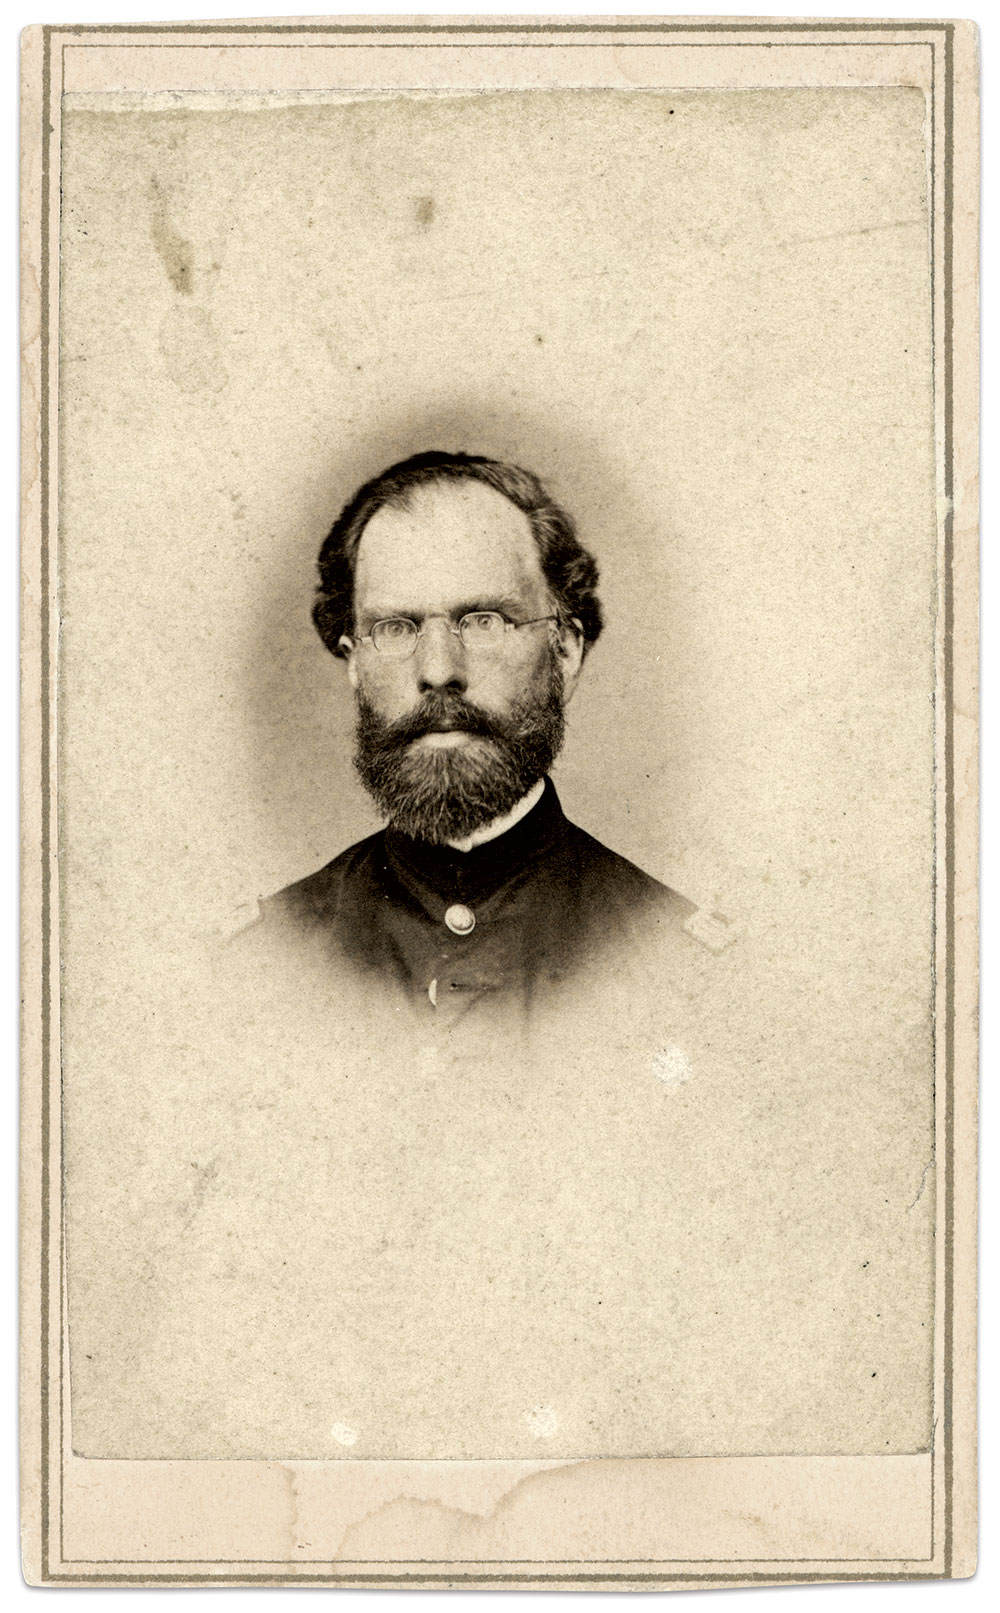 James. Carte de visite by Stayner & Smith of New Bern, N.C. Ross J. Kelbaugh Collection.